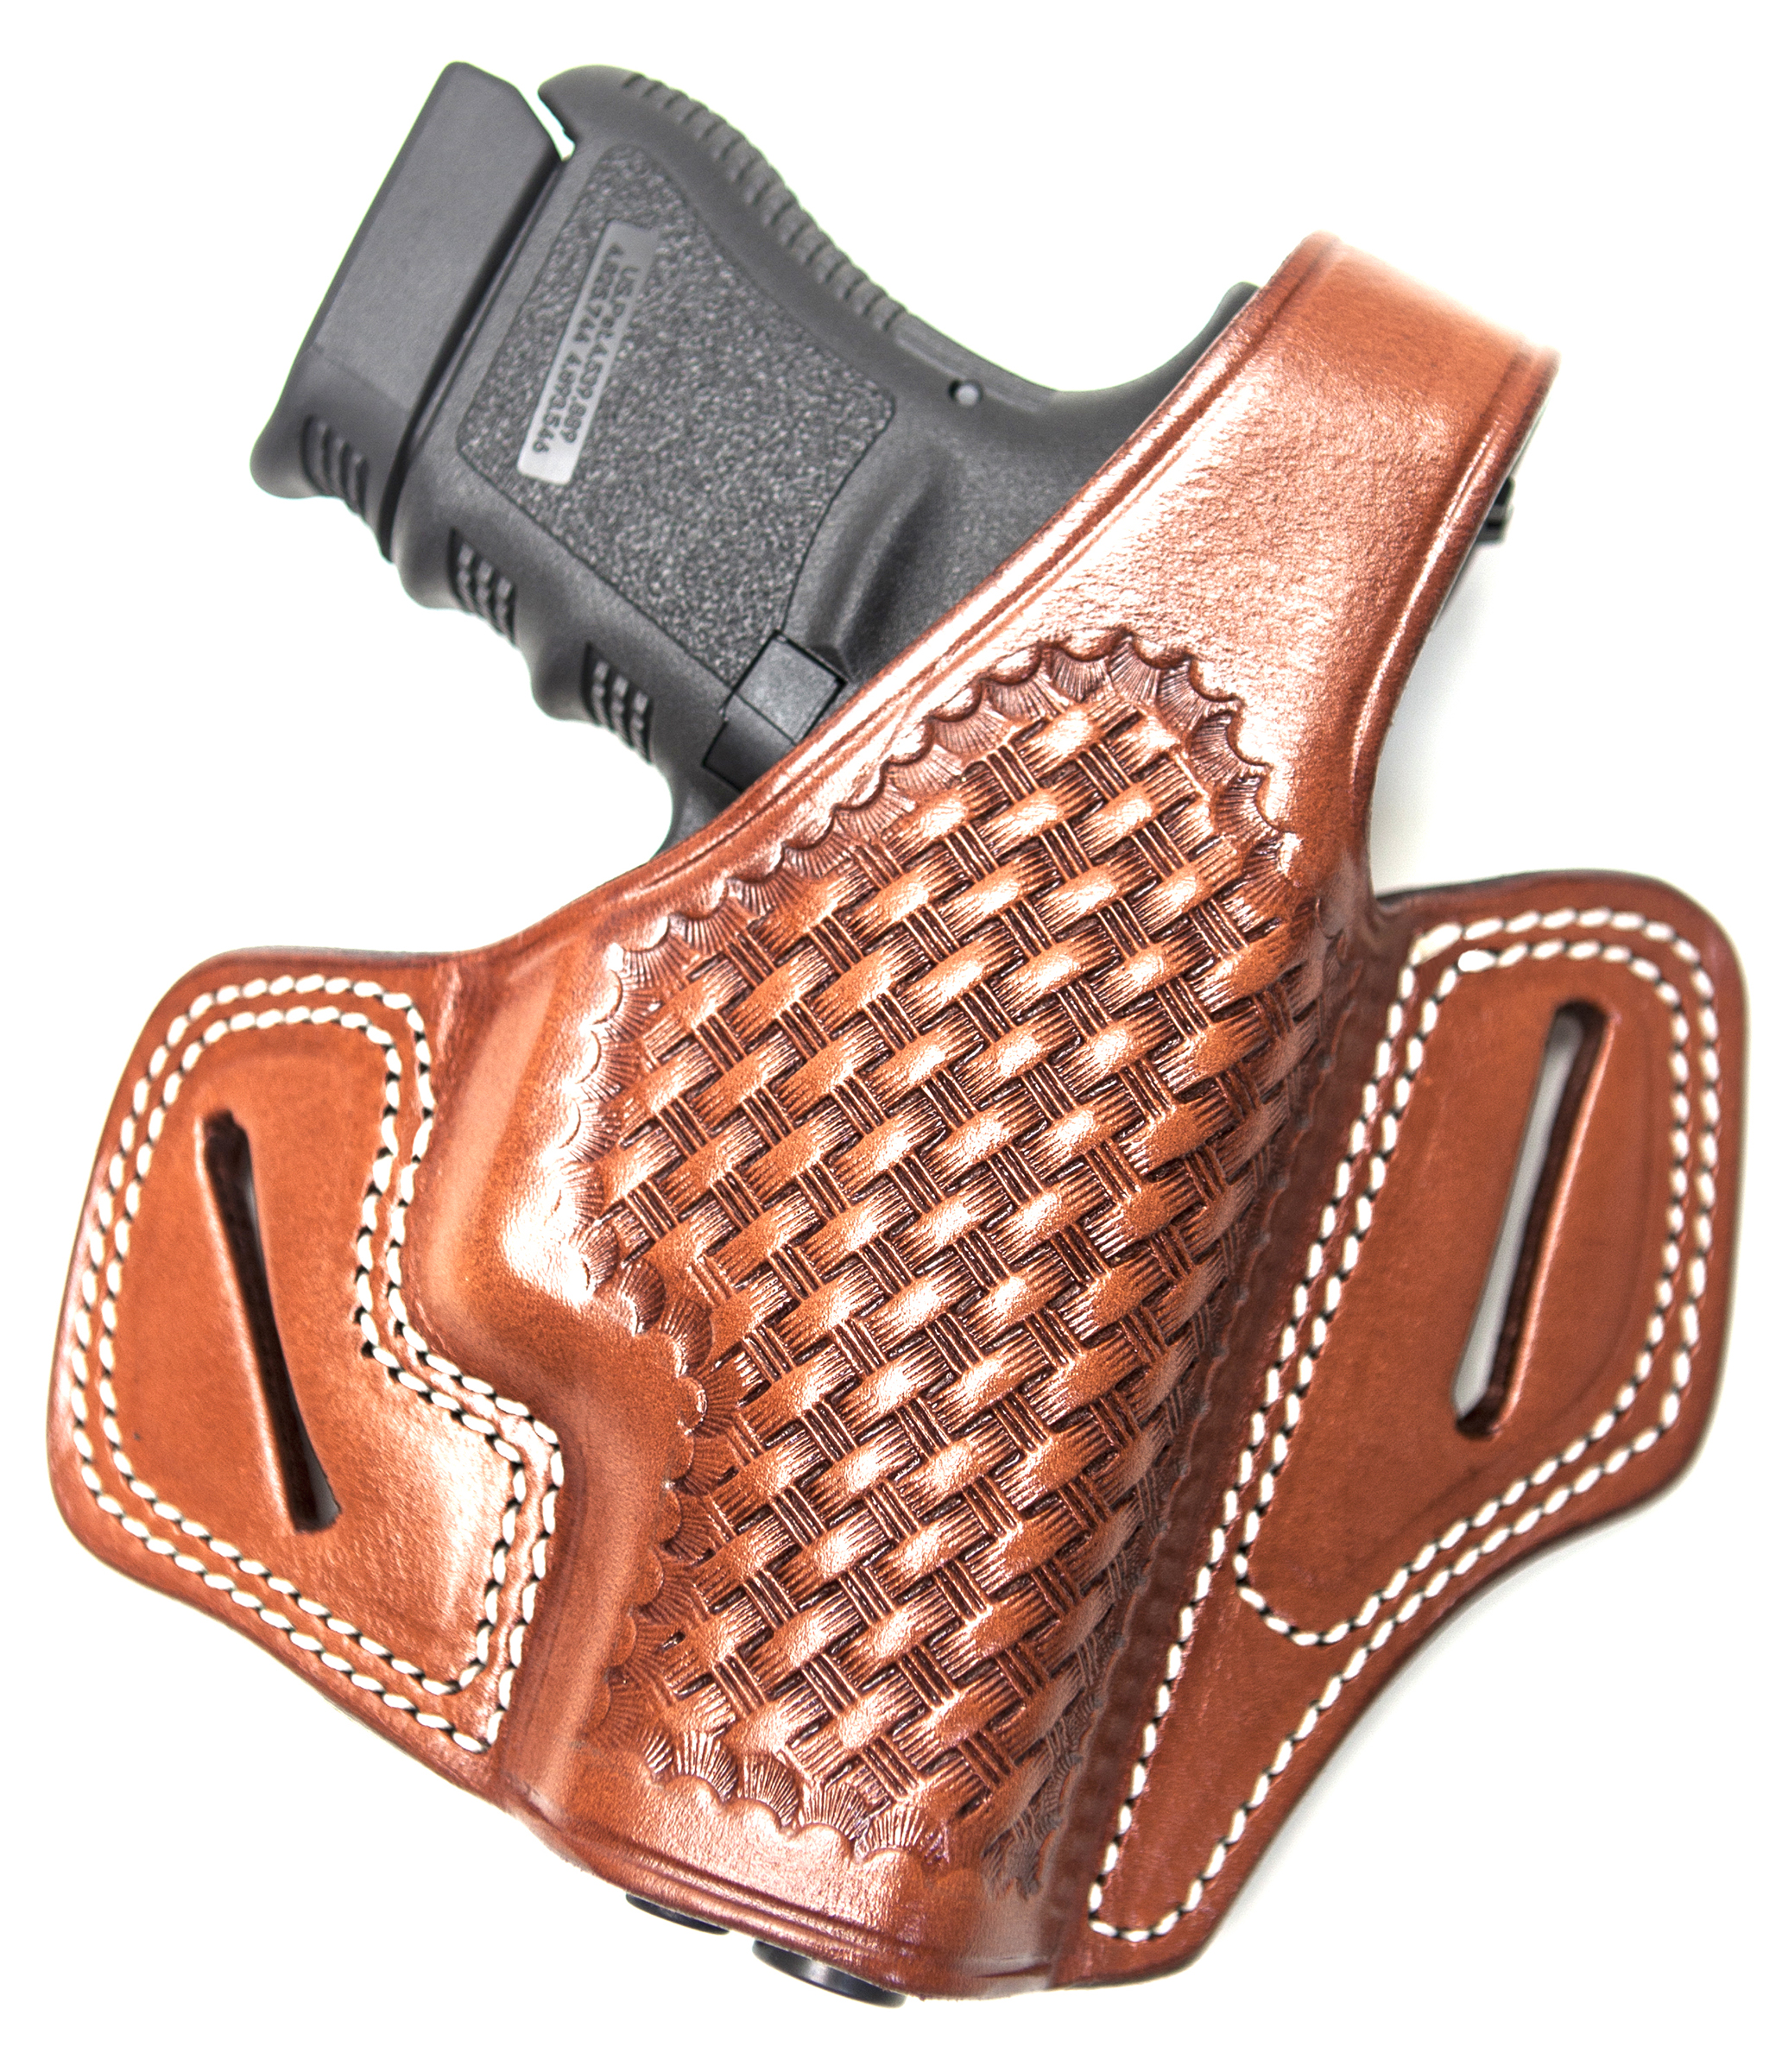 Cebeci Arms Sig Pro SP 2340 Leather Baksetweave Pancake Holster